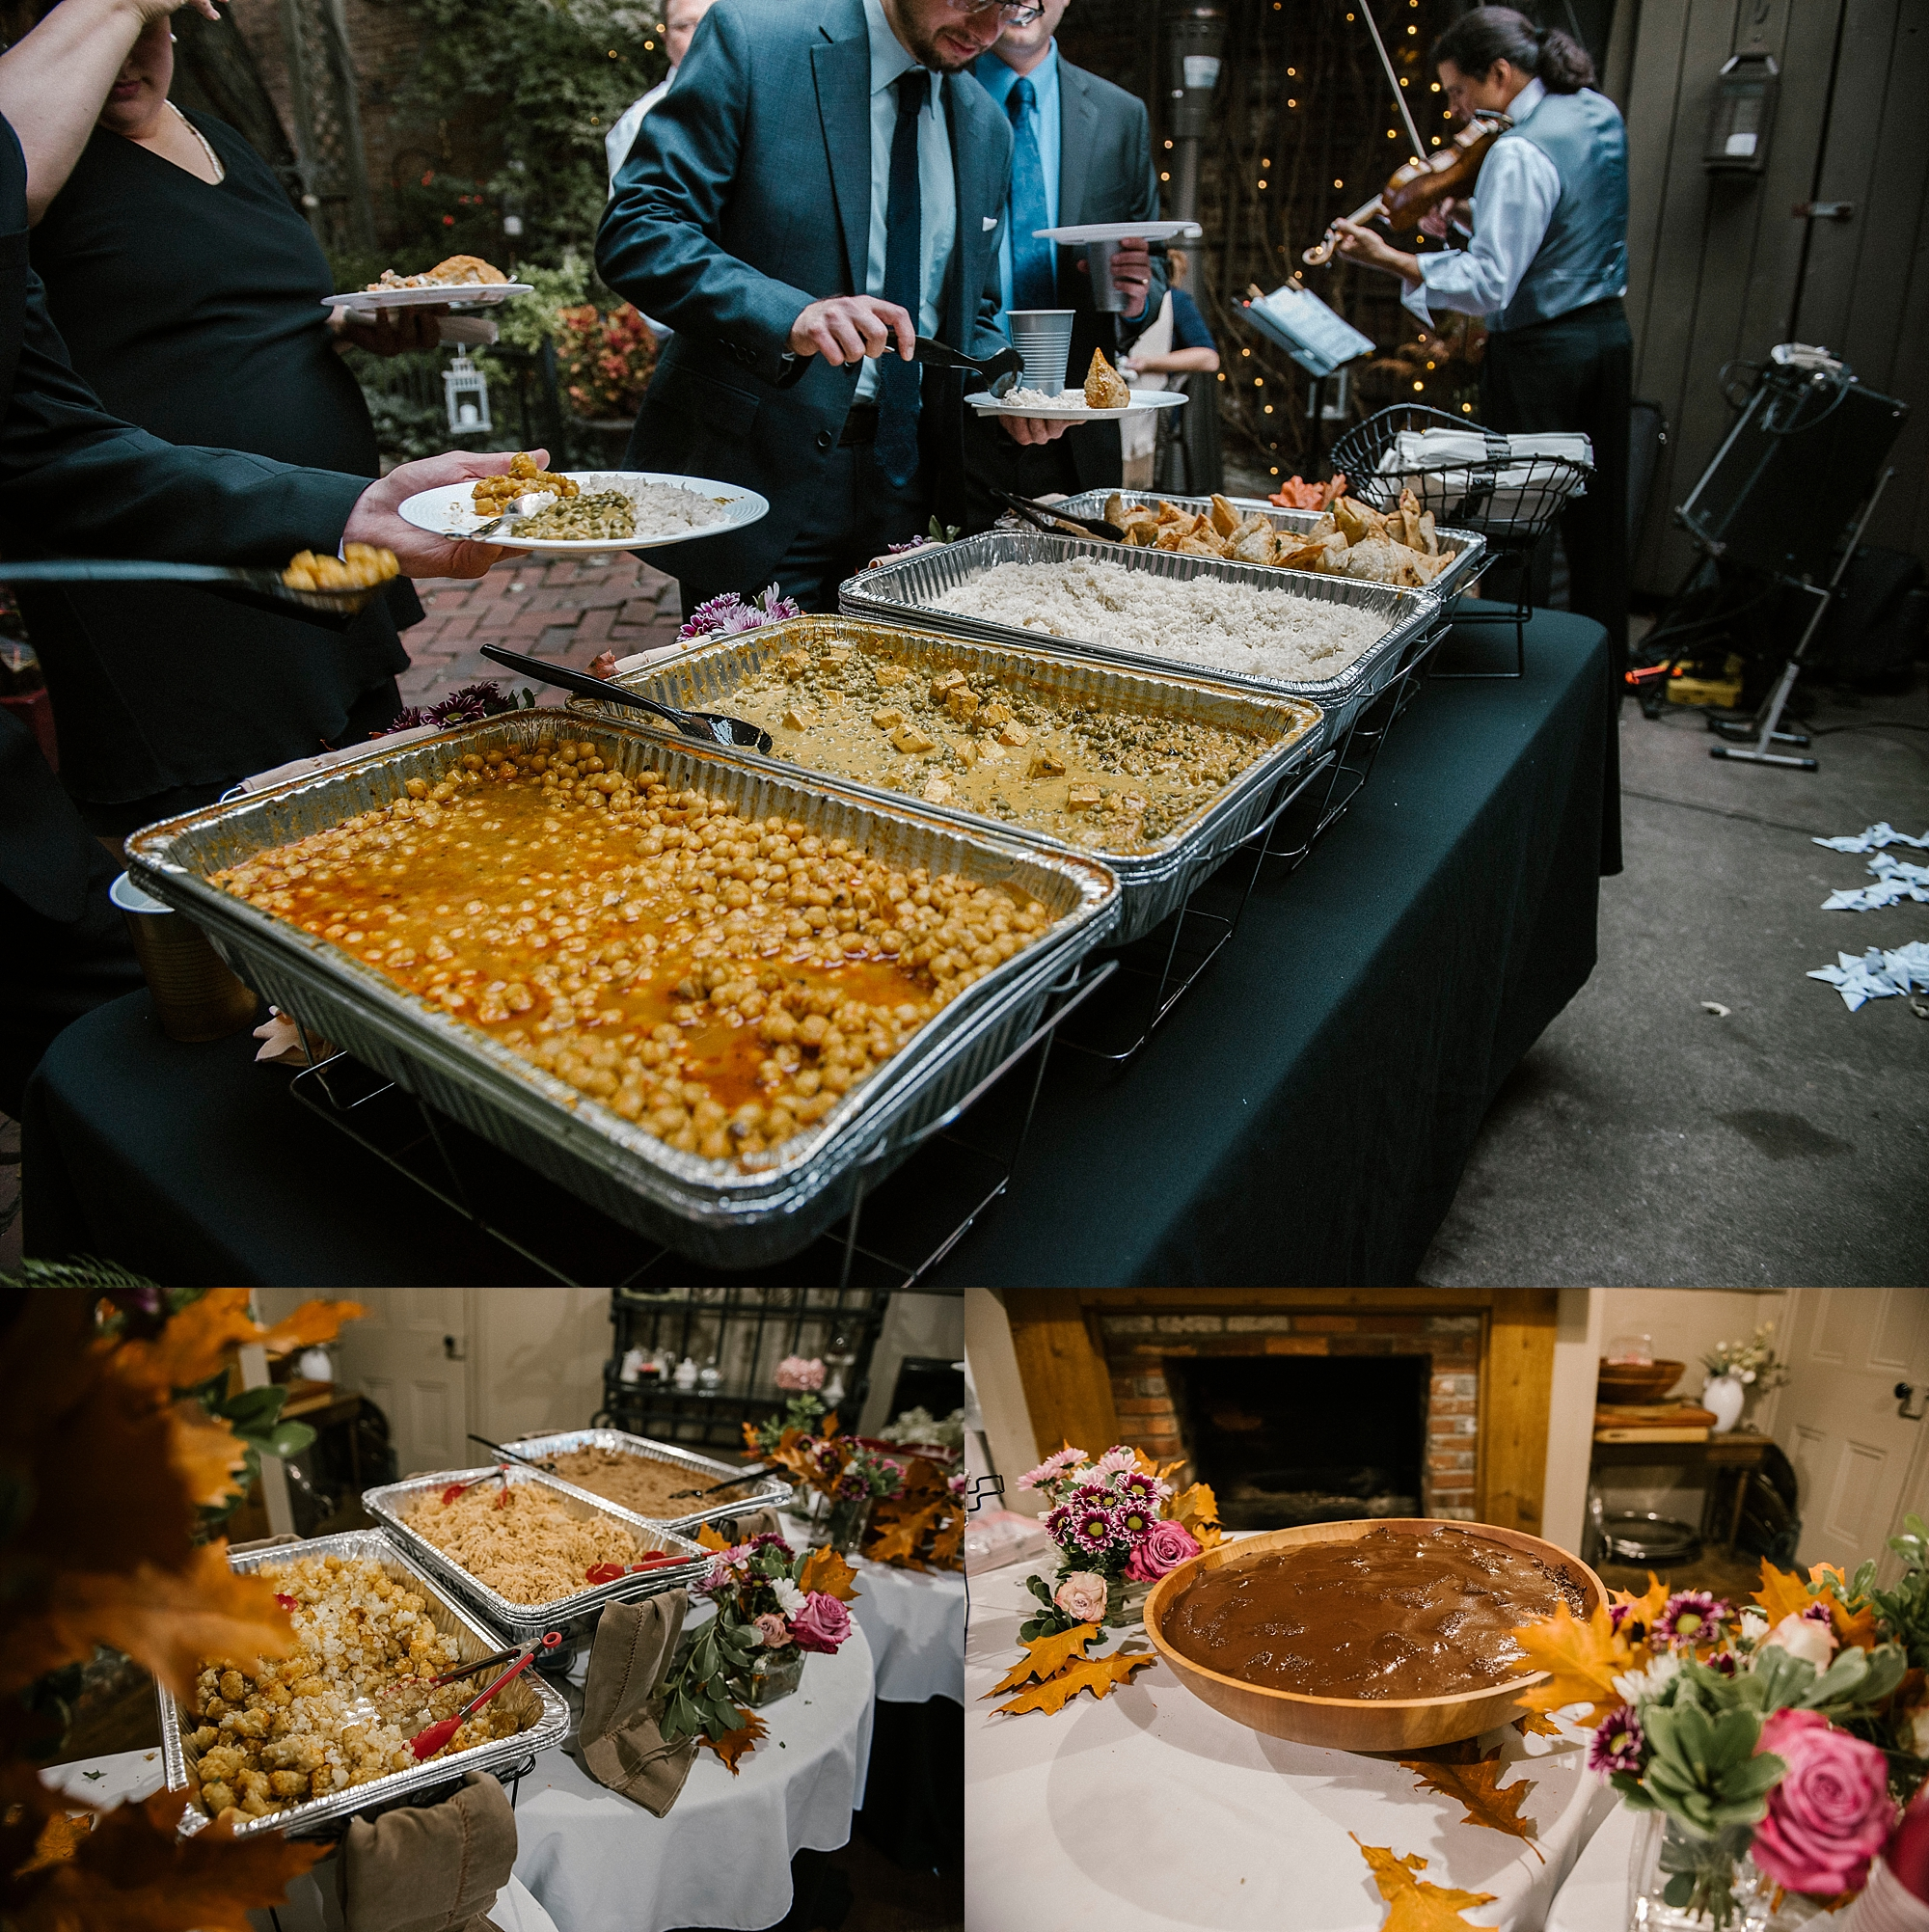 Vegan food wedding caterer Pittsburgh